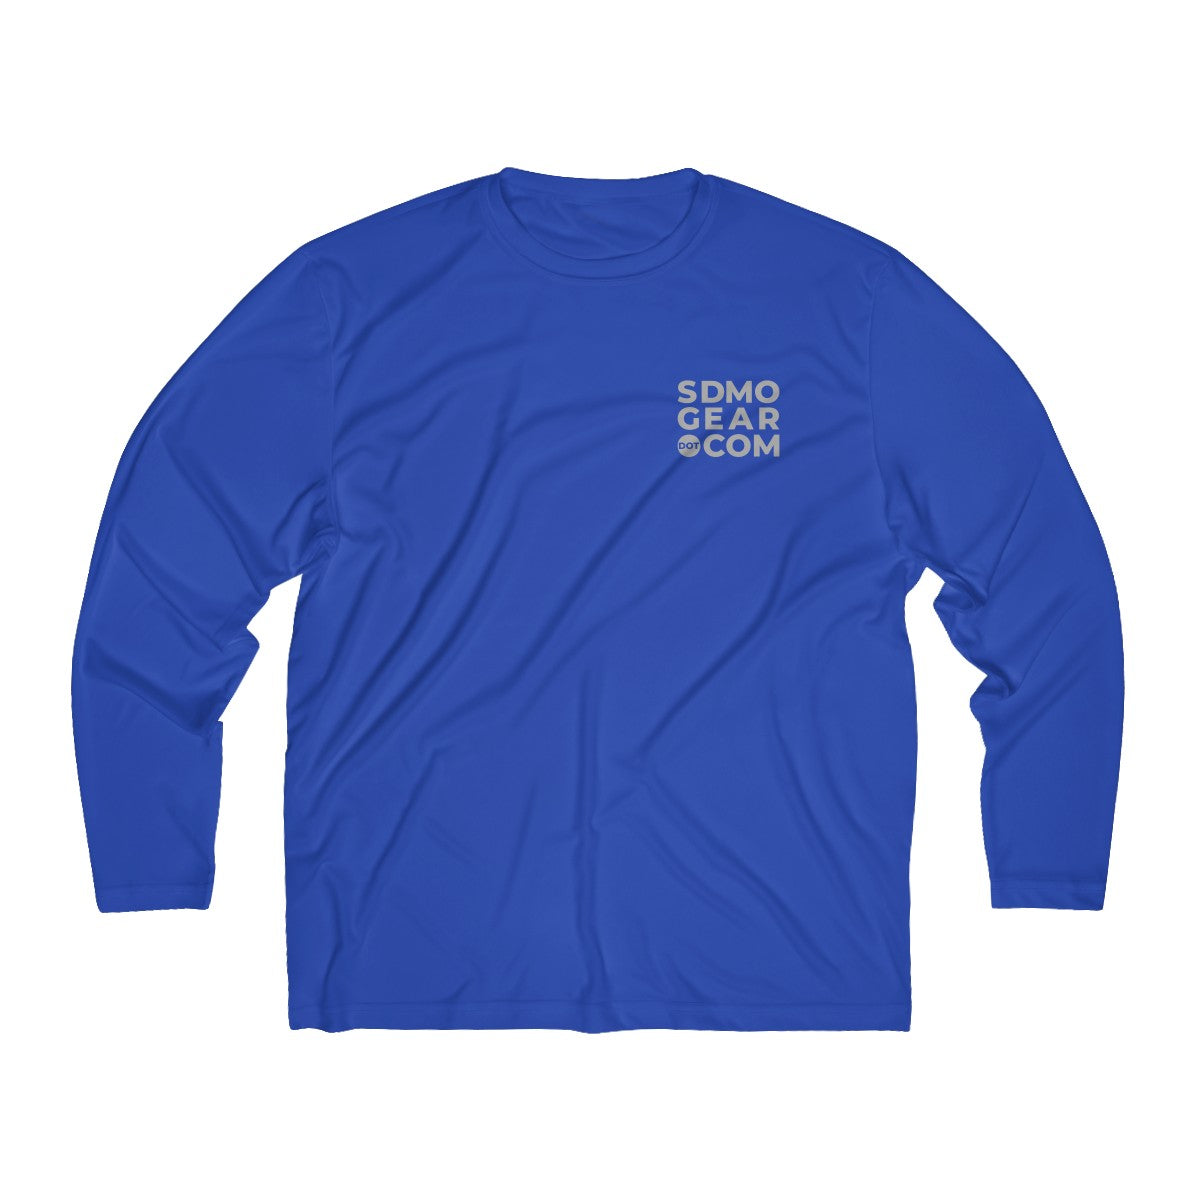 Men's Long Sleeve Moisture Absorbing Tee - SDMO Gear and SDMO Badge Designs